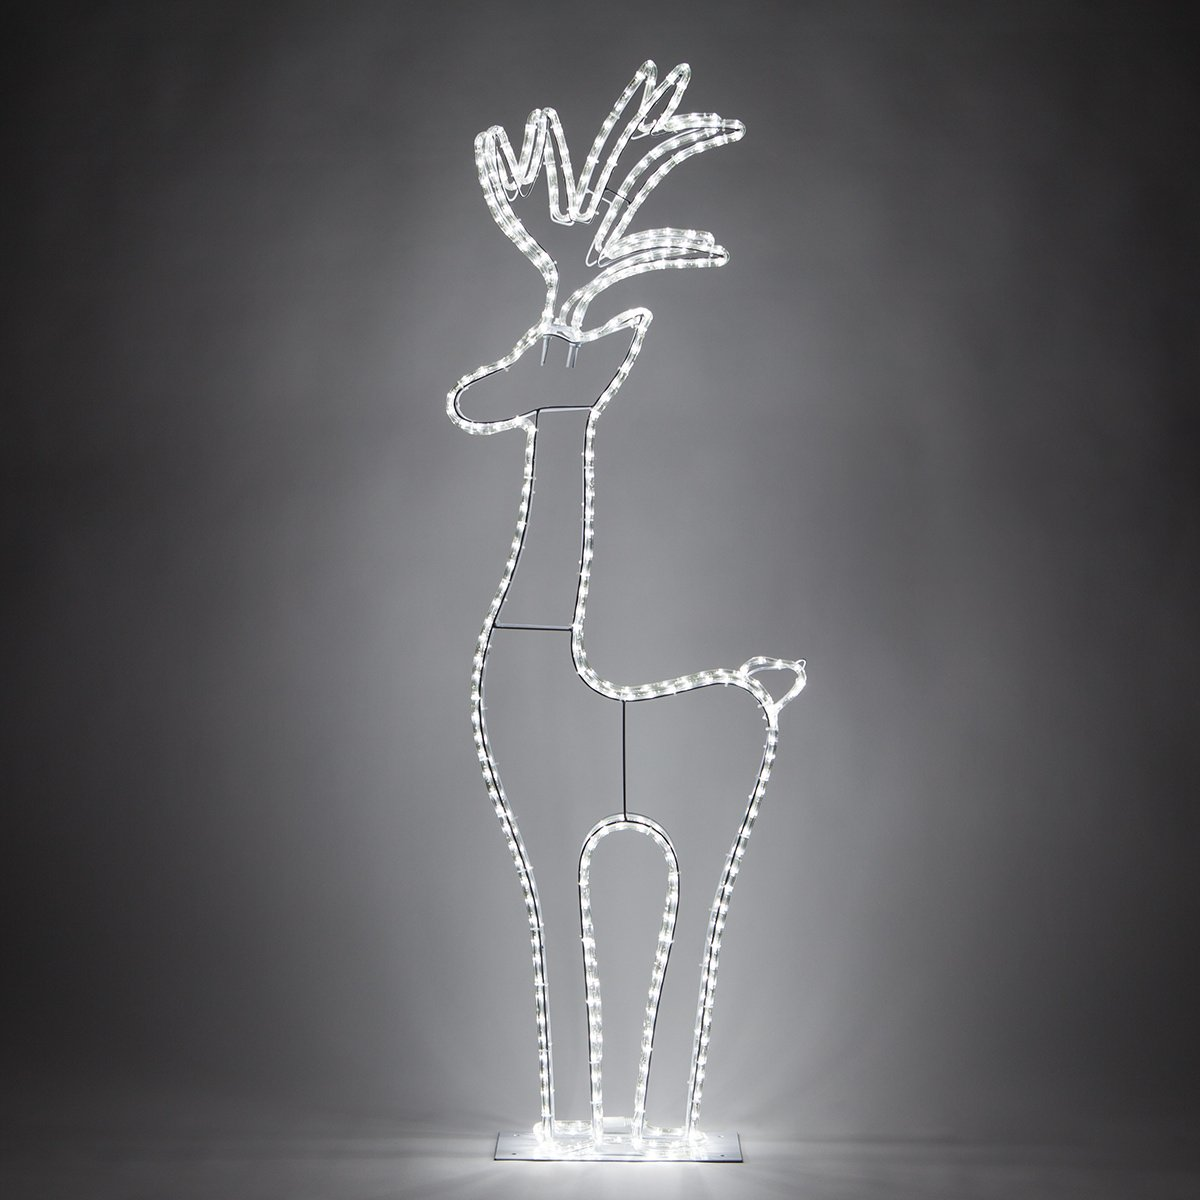 3D Cool White LED Christmas Reindeer Yard Decorations (4 Ft Tall, 324 Lights)